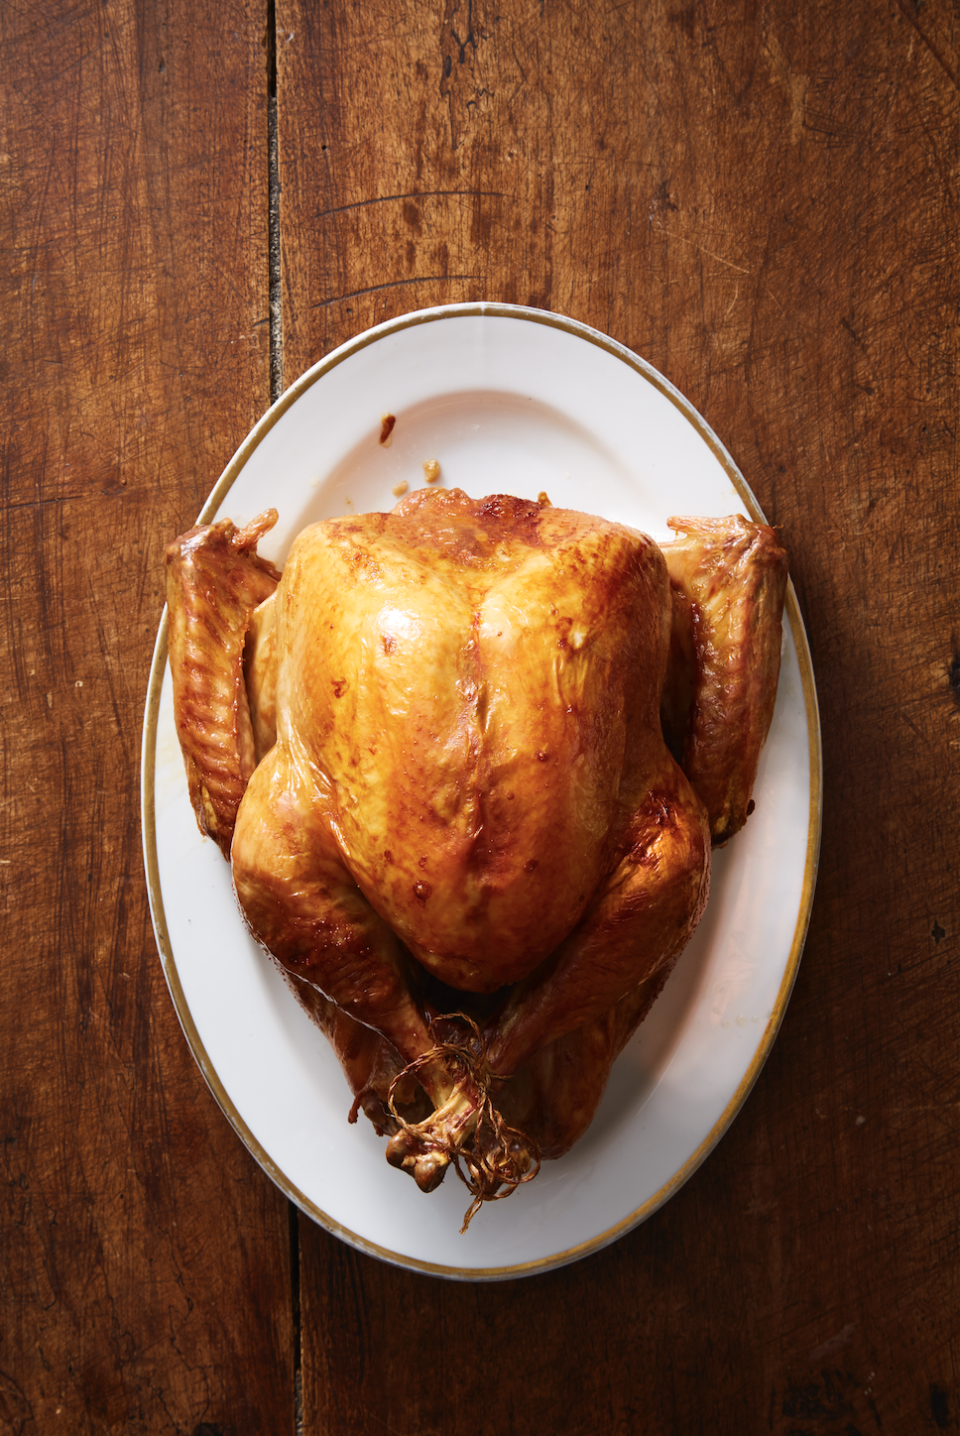 """<p>There's a reason gravy and stuffing are our favorite <a href=""""https://www.goodhousekeeping.com/holidays/thanksgiving-ideas/g1202/thanksgiving-side-dishes/"""" rel=""""nofollow noopener"""" target=""""_blank"""" data-ylk=""""slk:Thanksgiving side dishes"""" class=""""link rapid-noclick-resp"""">Thanksgiving side dishes</a>: Turkey meat can be boring and bland, and it often needs a little help from the supporting stars at the table. But don't worry — learning how to season a turkey for baking and what flavors go well with turkey is a foolproof way to add flavor to the preferred holiday protein. Try our top tips for what to season turkey breast with, what herbs and spices go with turkey and our tasty turkey rub (hello, spice butter!) recipes. </p>"""